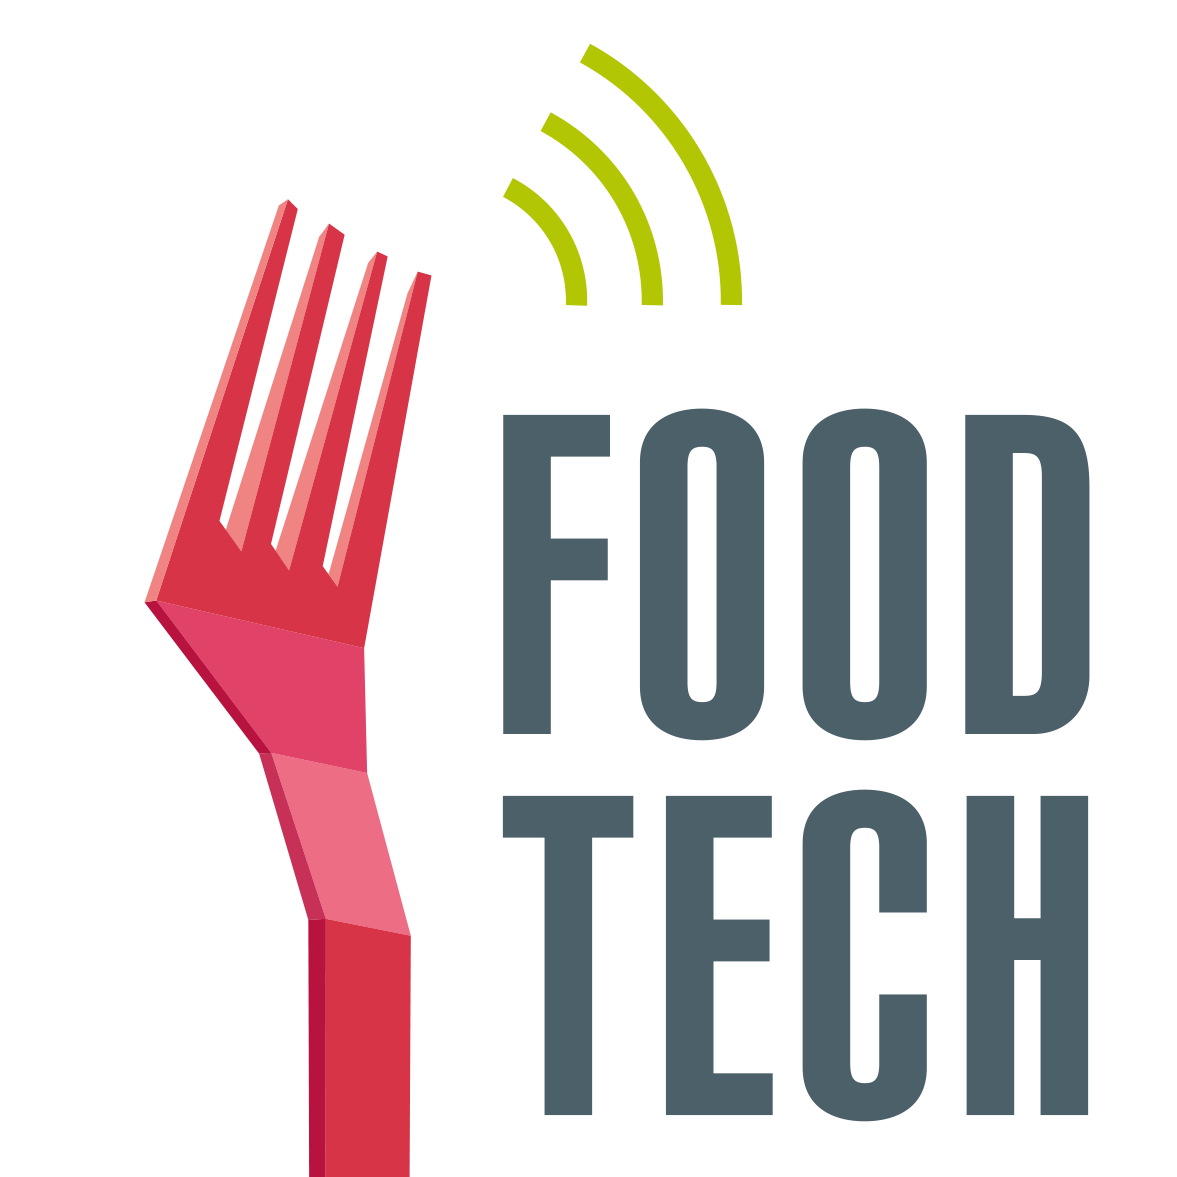 La foodtech l 39 cosyst me for Cuisine tech